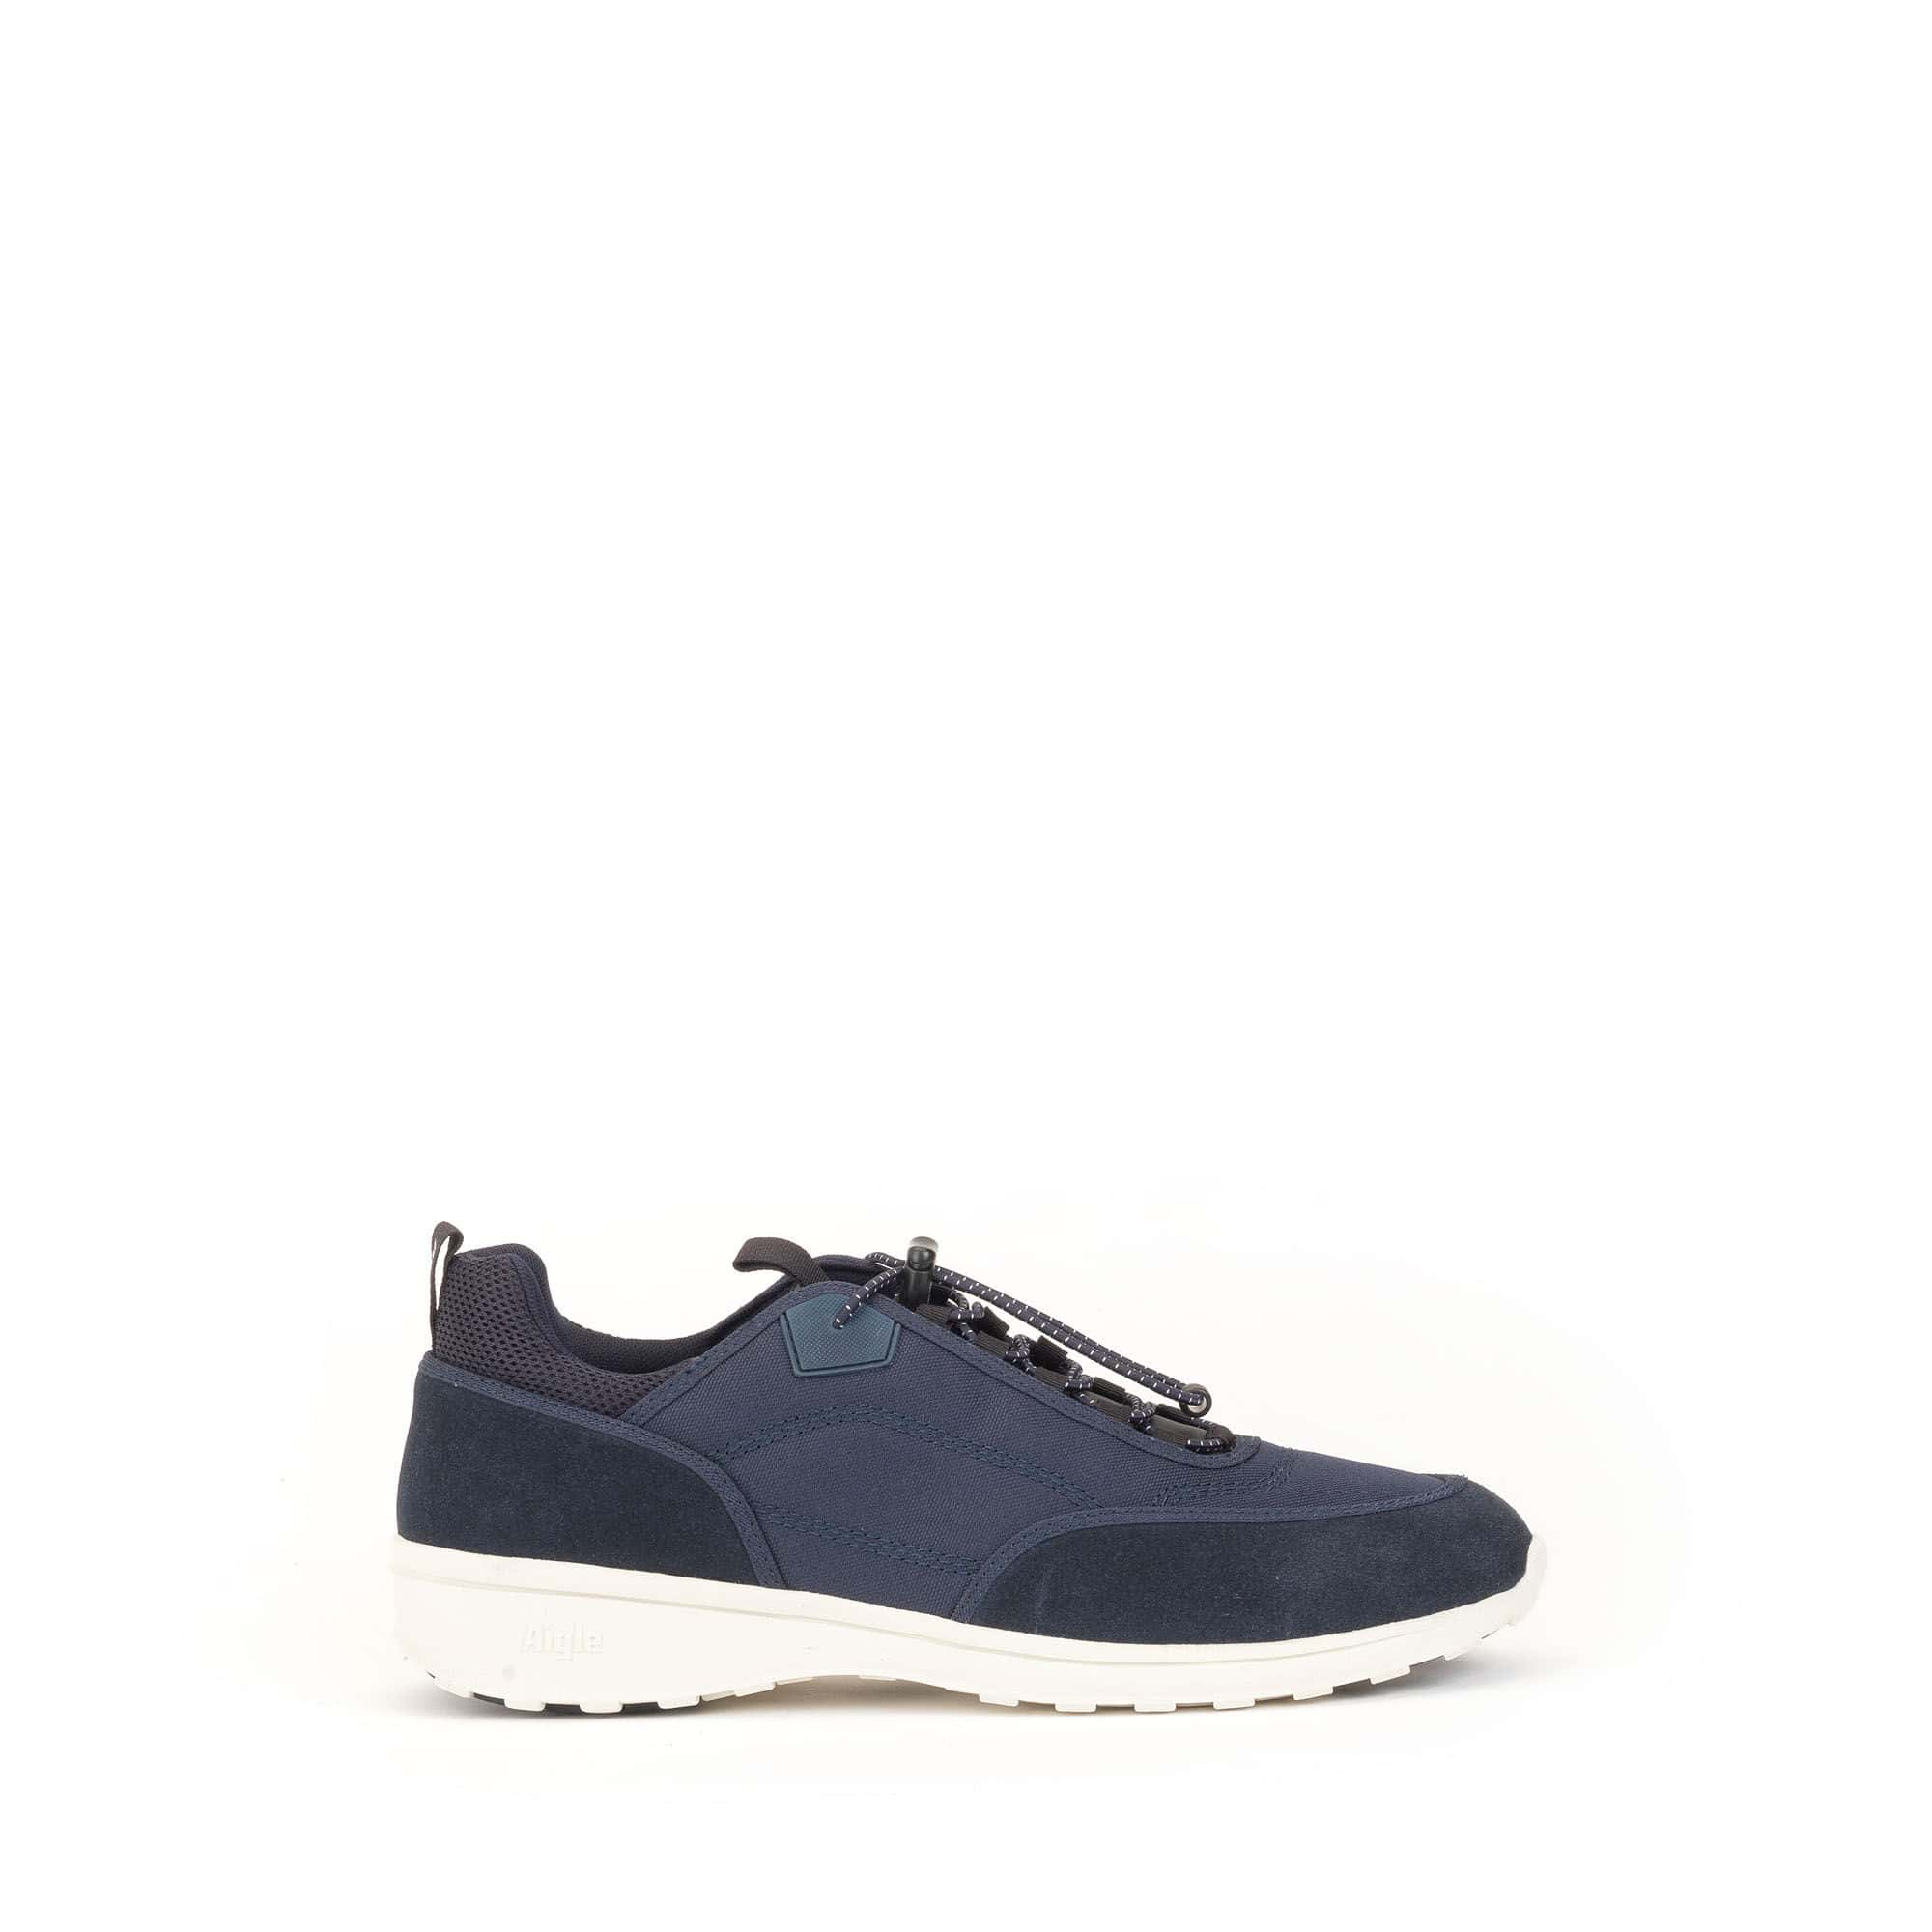 Chaussures - Chaussures À Lacets-gu Ica aB7wqYO